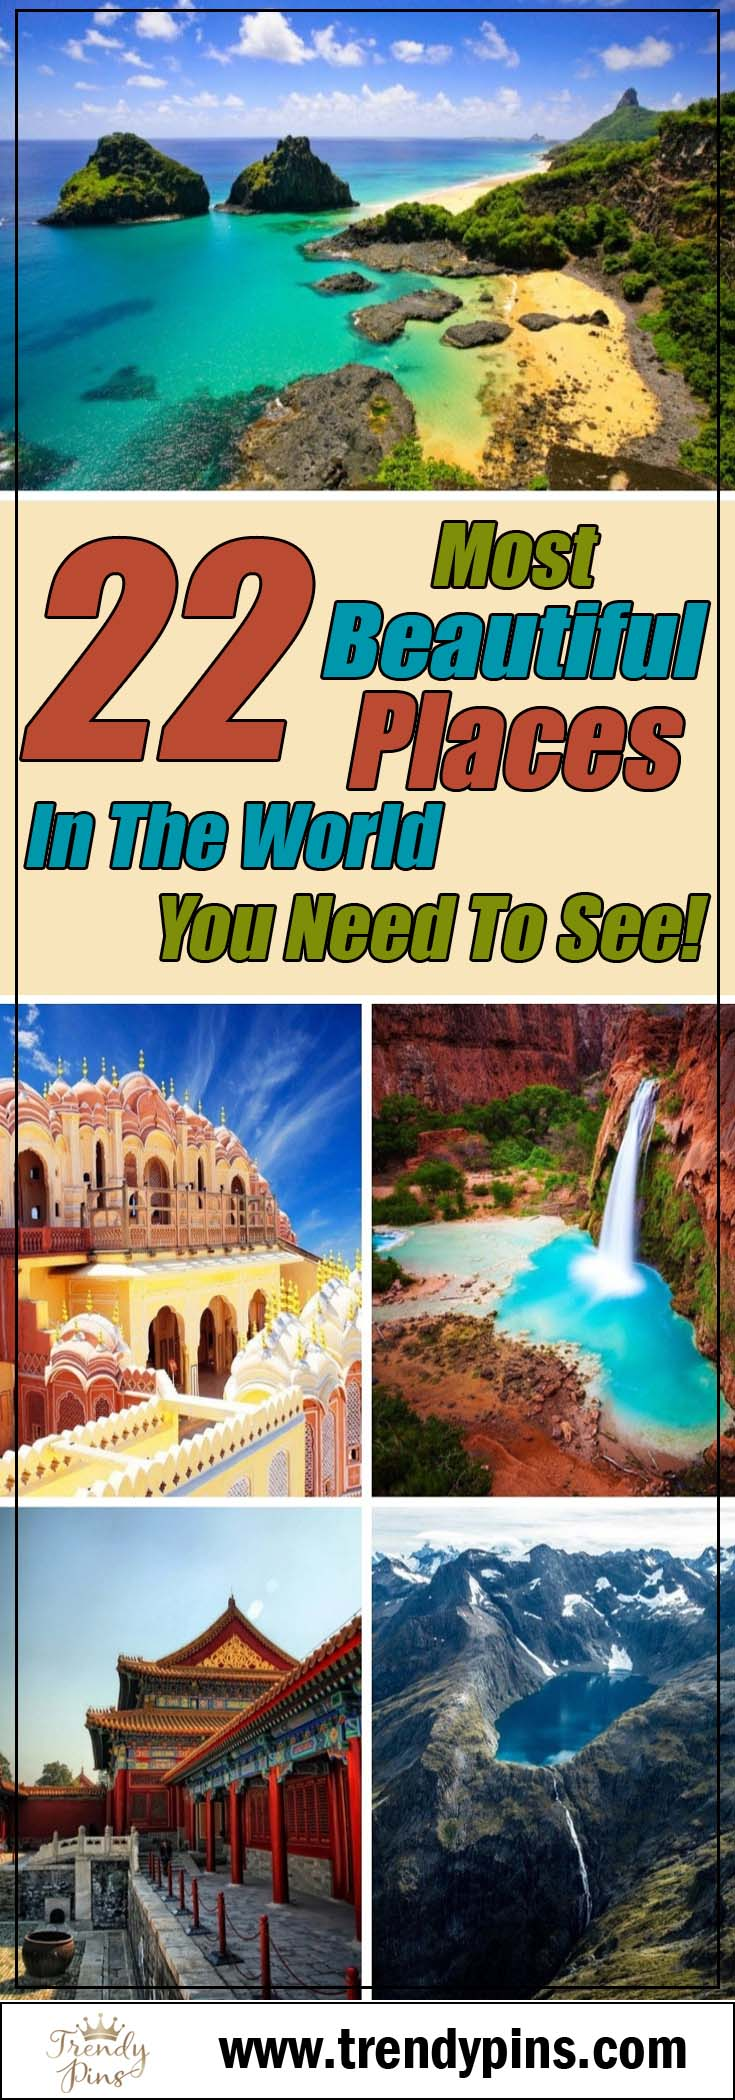 22 most beautiful places in the world you need to see!